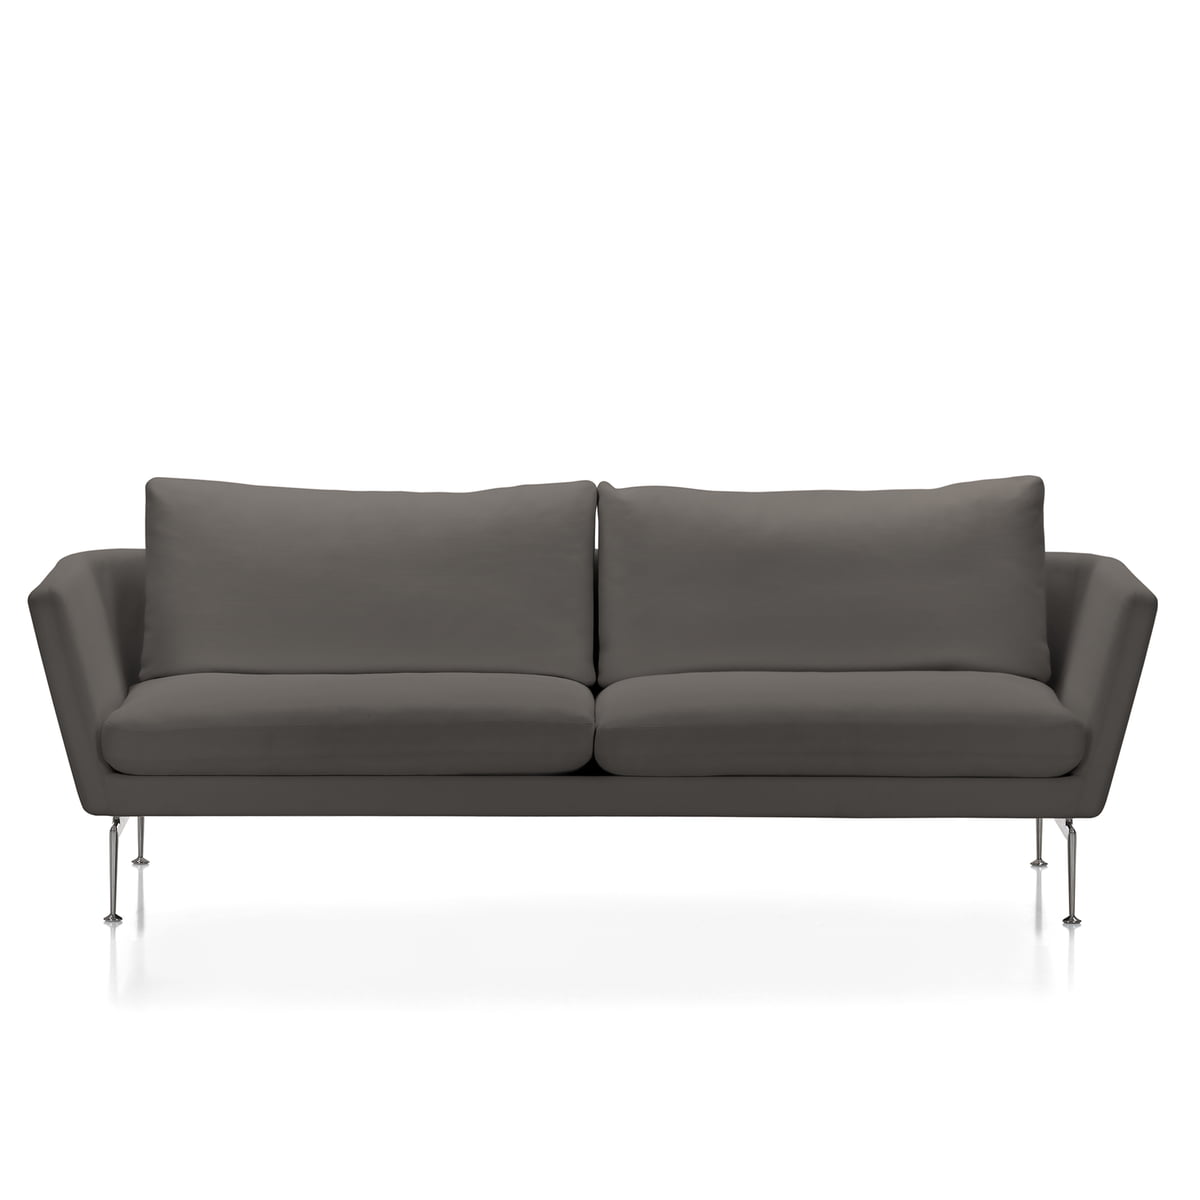 suita sofa von vitra connox. Black Bedroom Furniture Sets. Home Design Ideas